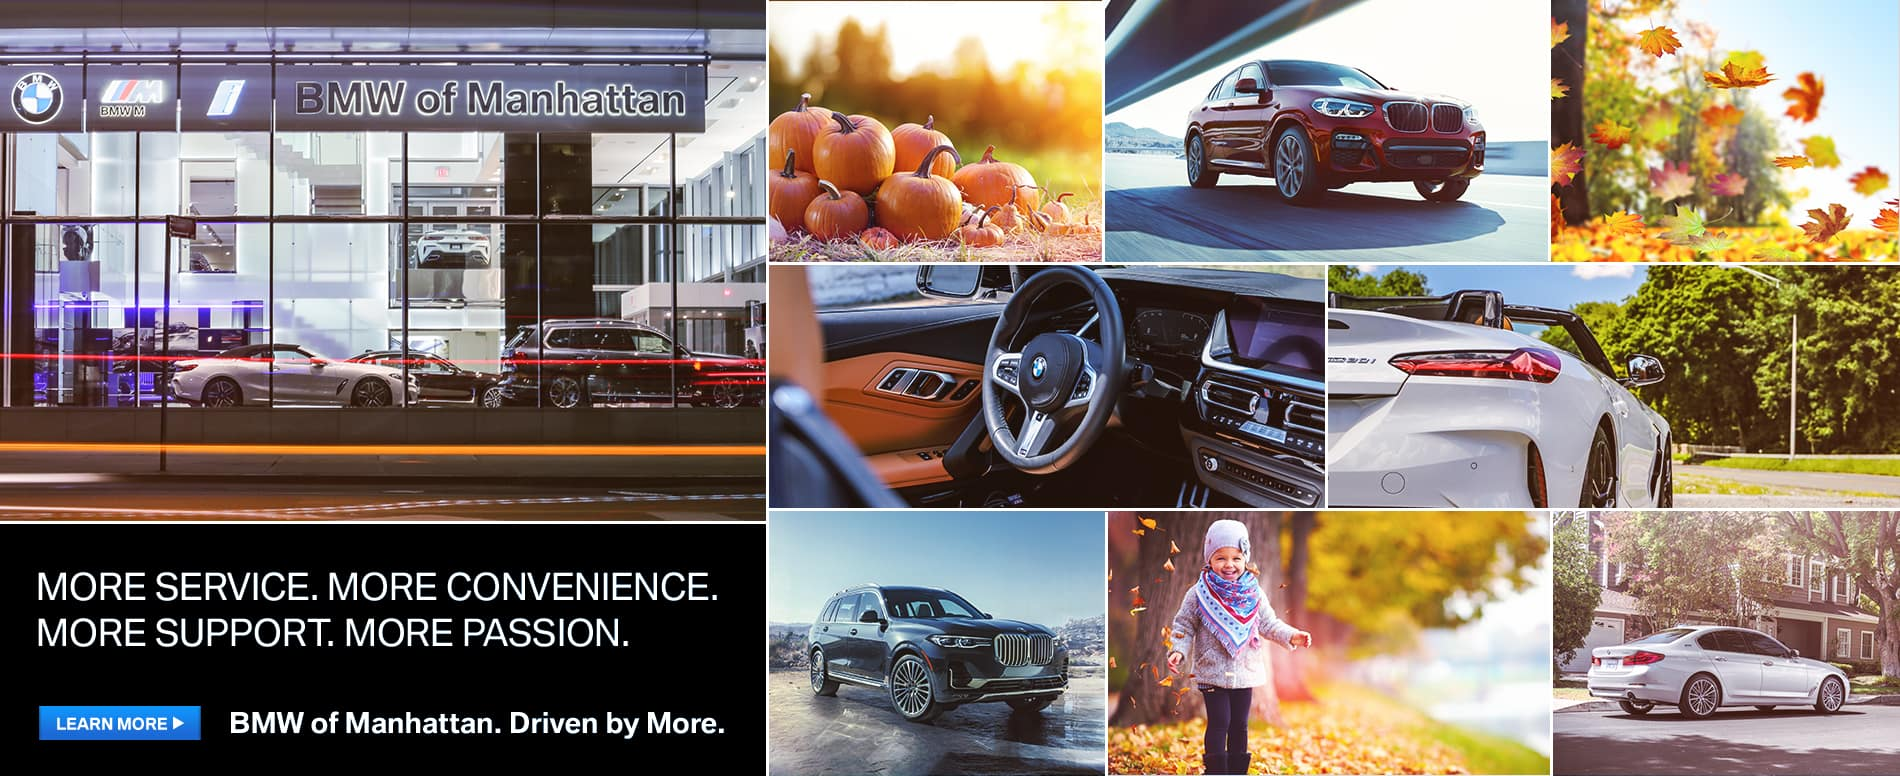 Bmw Dealers Long Island >> Bmw Dealer Manhattan Ny Bmw Of Manhattan